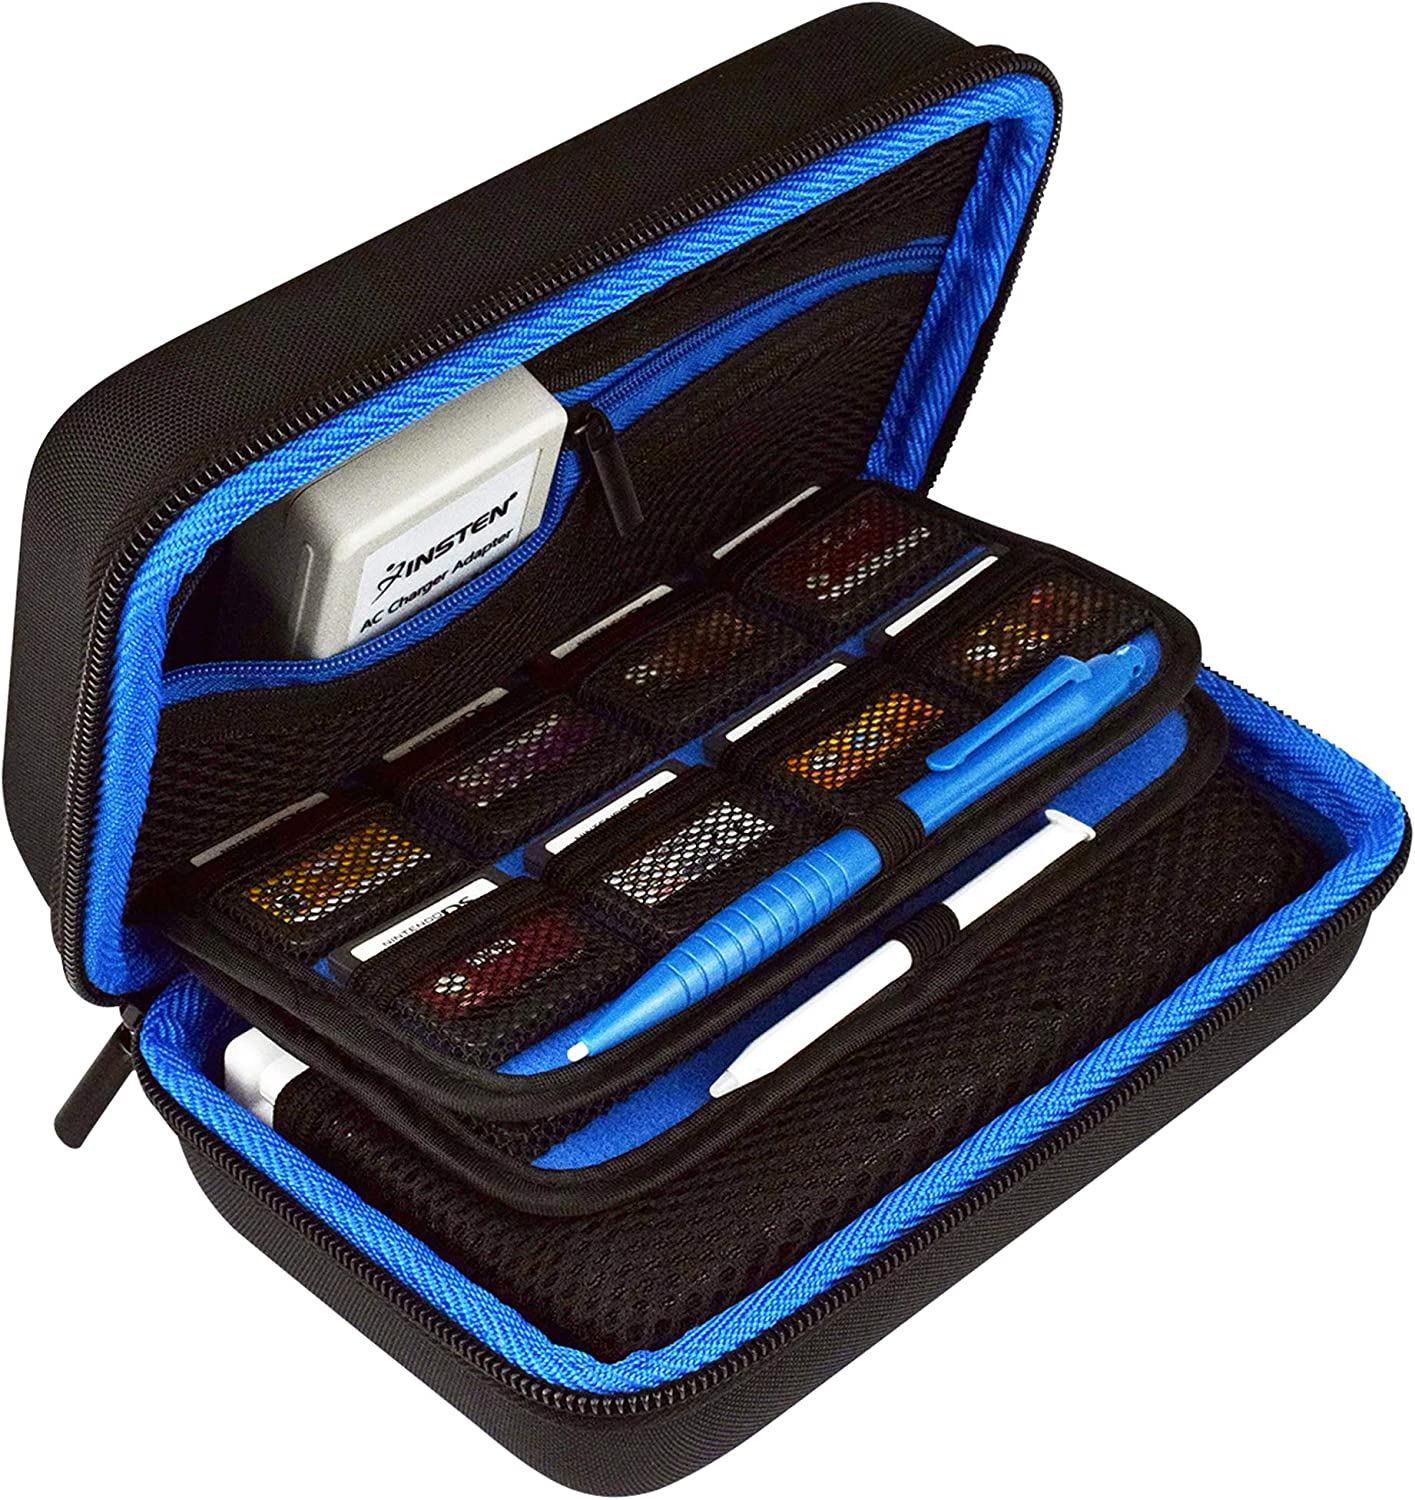 TAKECASE Hard Shell Carrying Case - Compatible with Nintendo 3DS XL and 2DS XL - Fits 16 Game Cards and Wall Charger - Includes Removable Accessories Pouch and Extra Large Stylus Dark Blue: Electronics